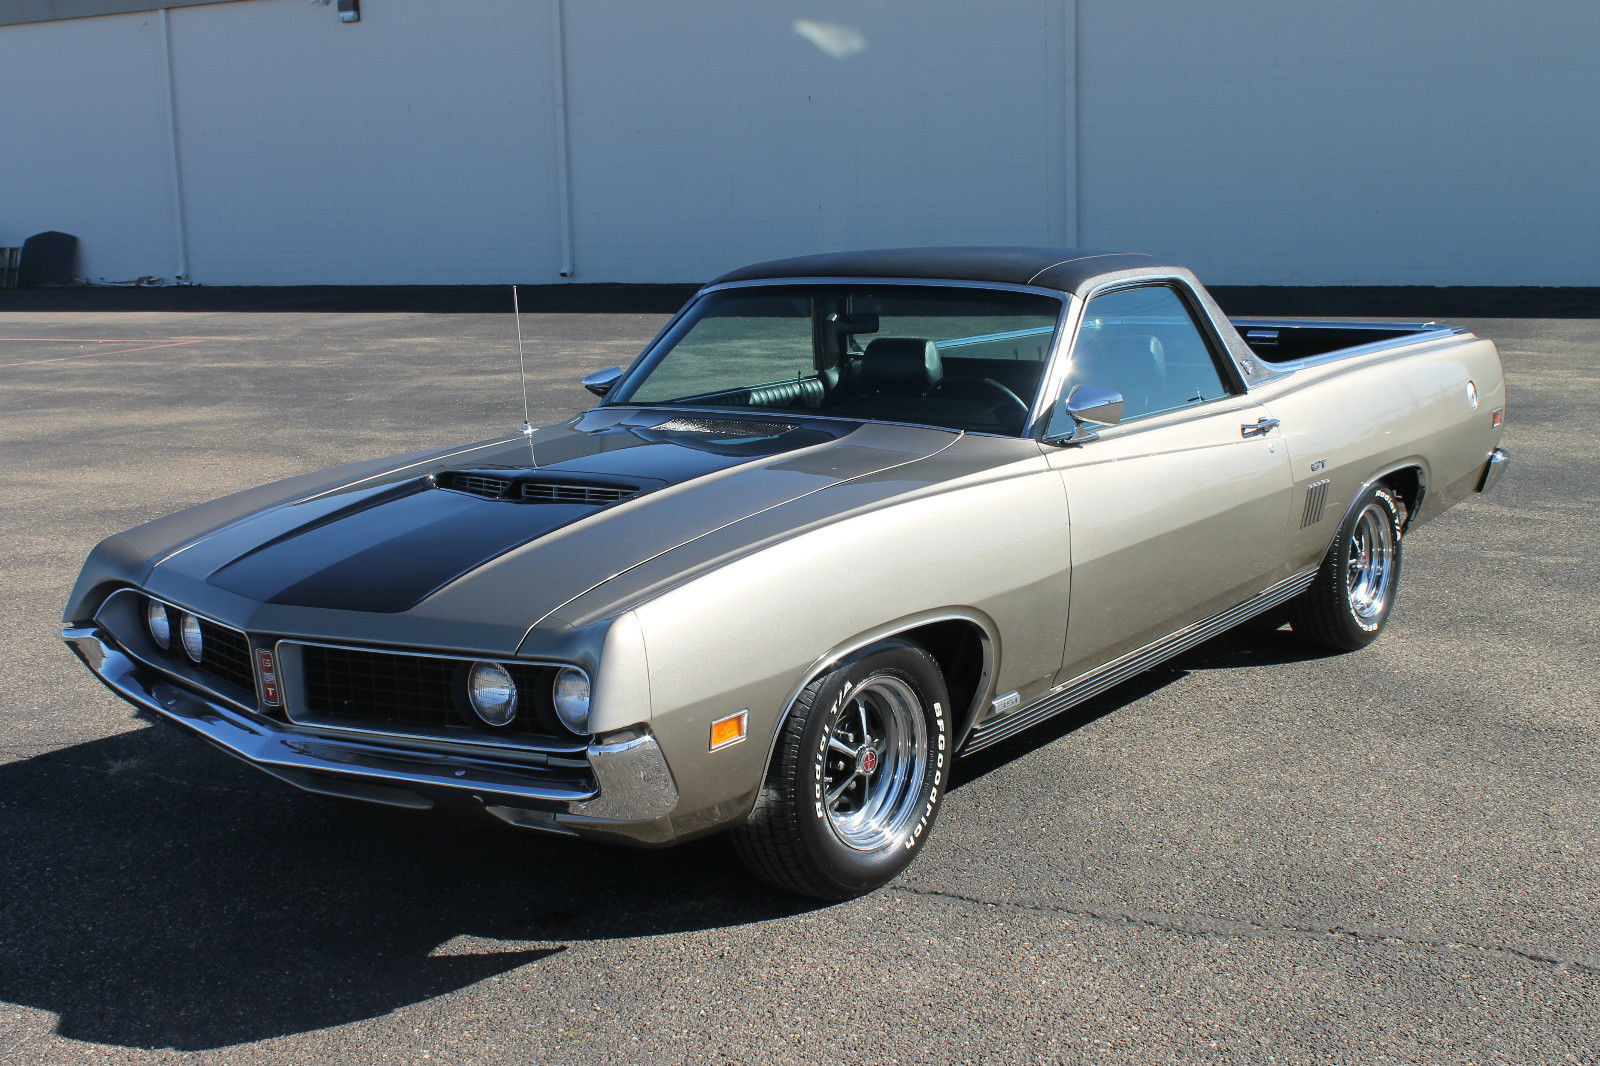 Professionally Restored 1970 Ford Ranchero Gt Vintage For Sale